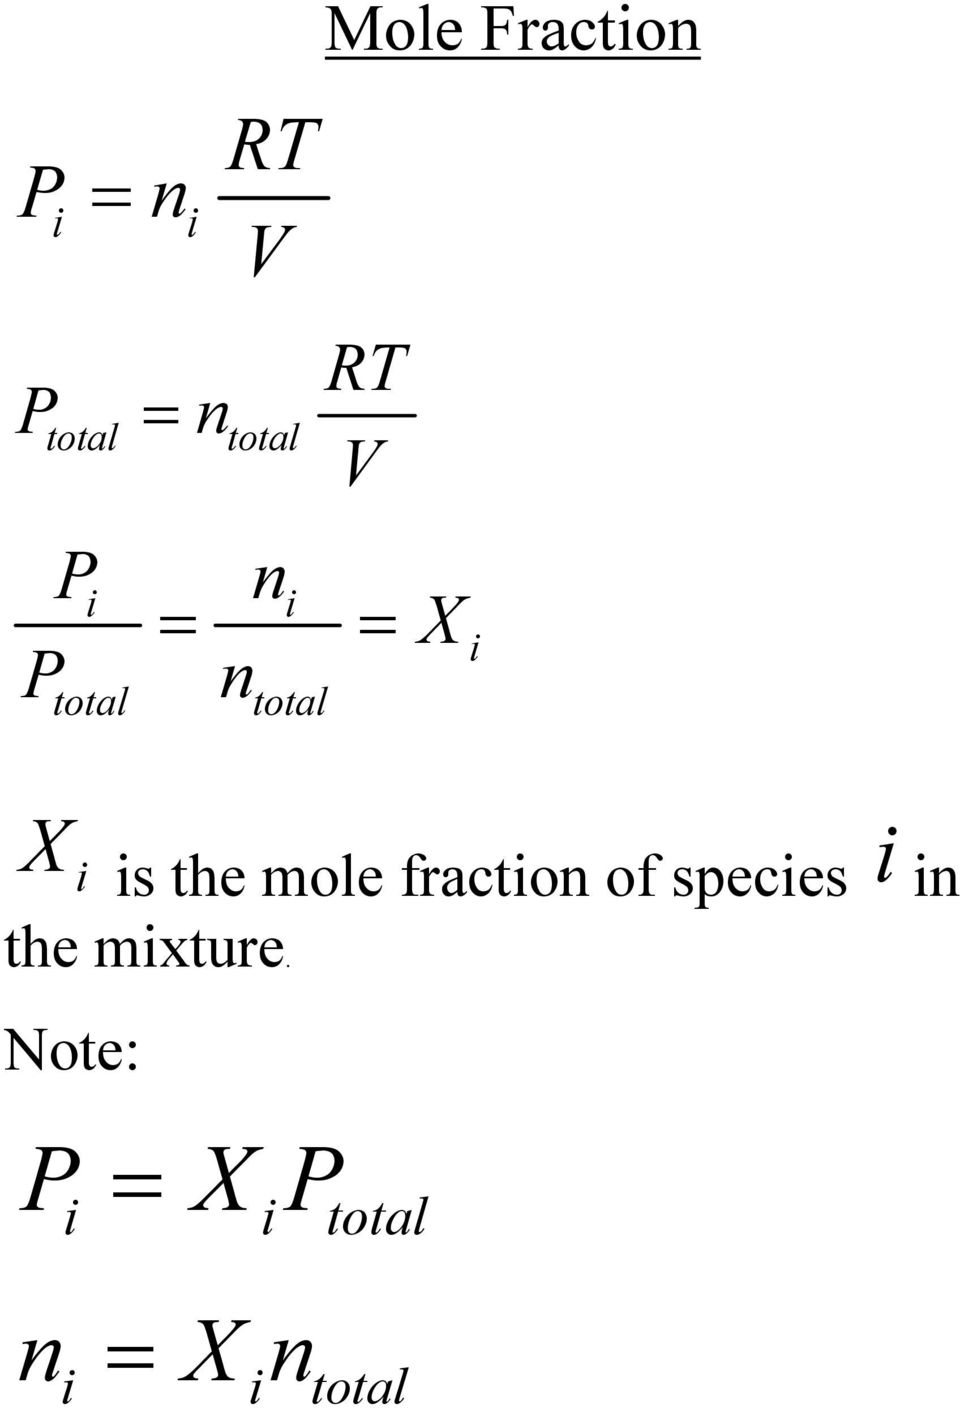 mole fraction of species i in the